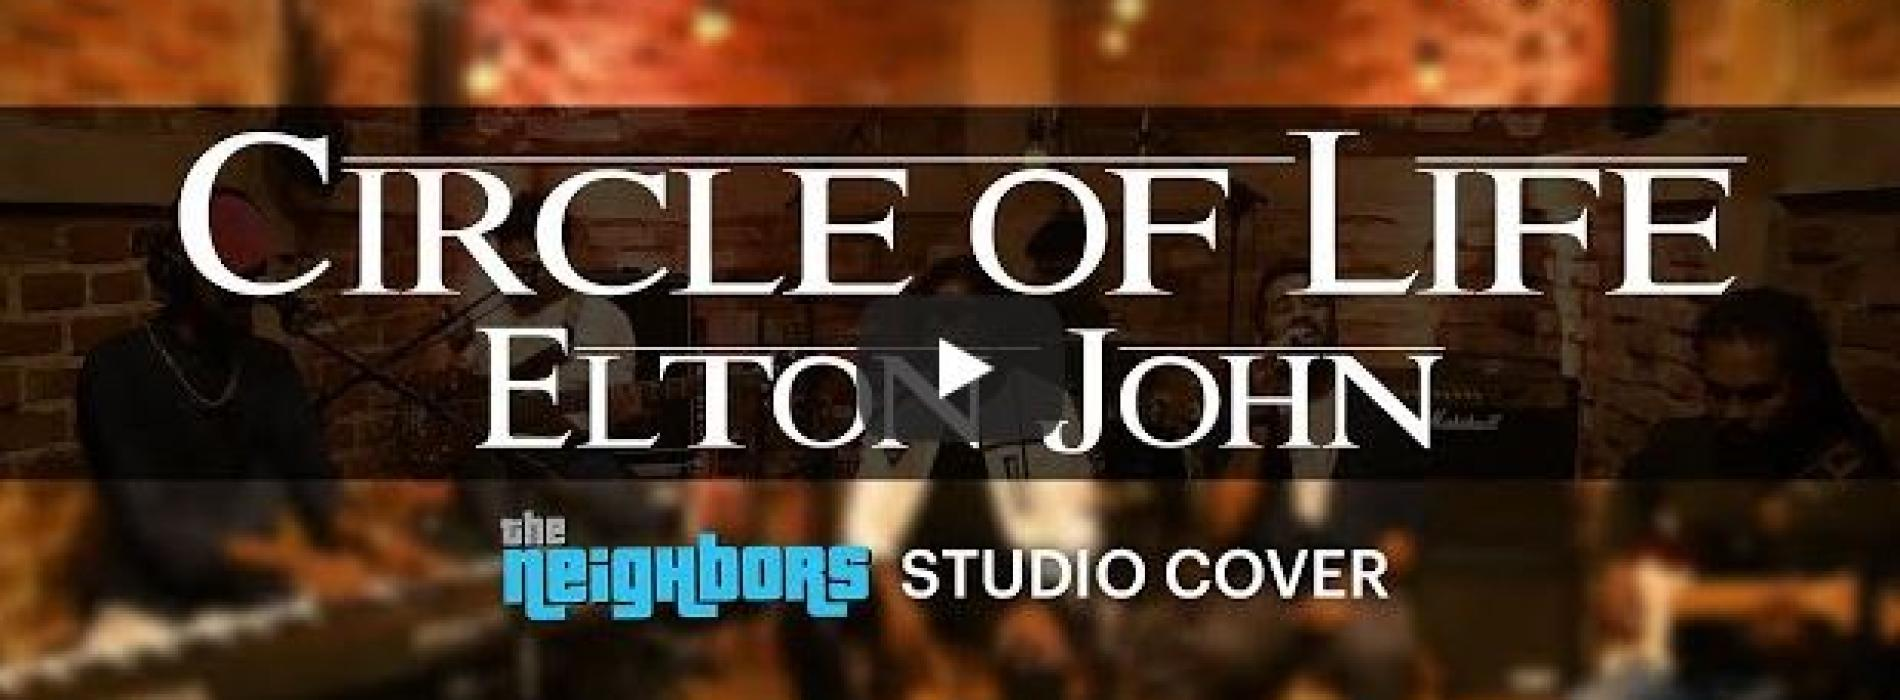 New Music : Circle of Life(Lion King Soundtrack) – The Neighbors Studio Live Cover